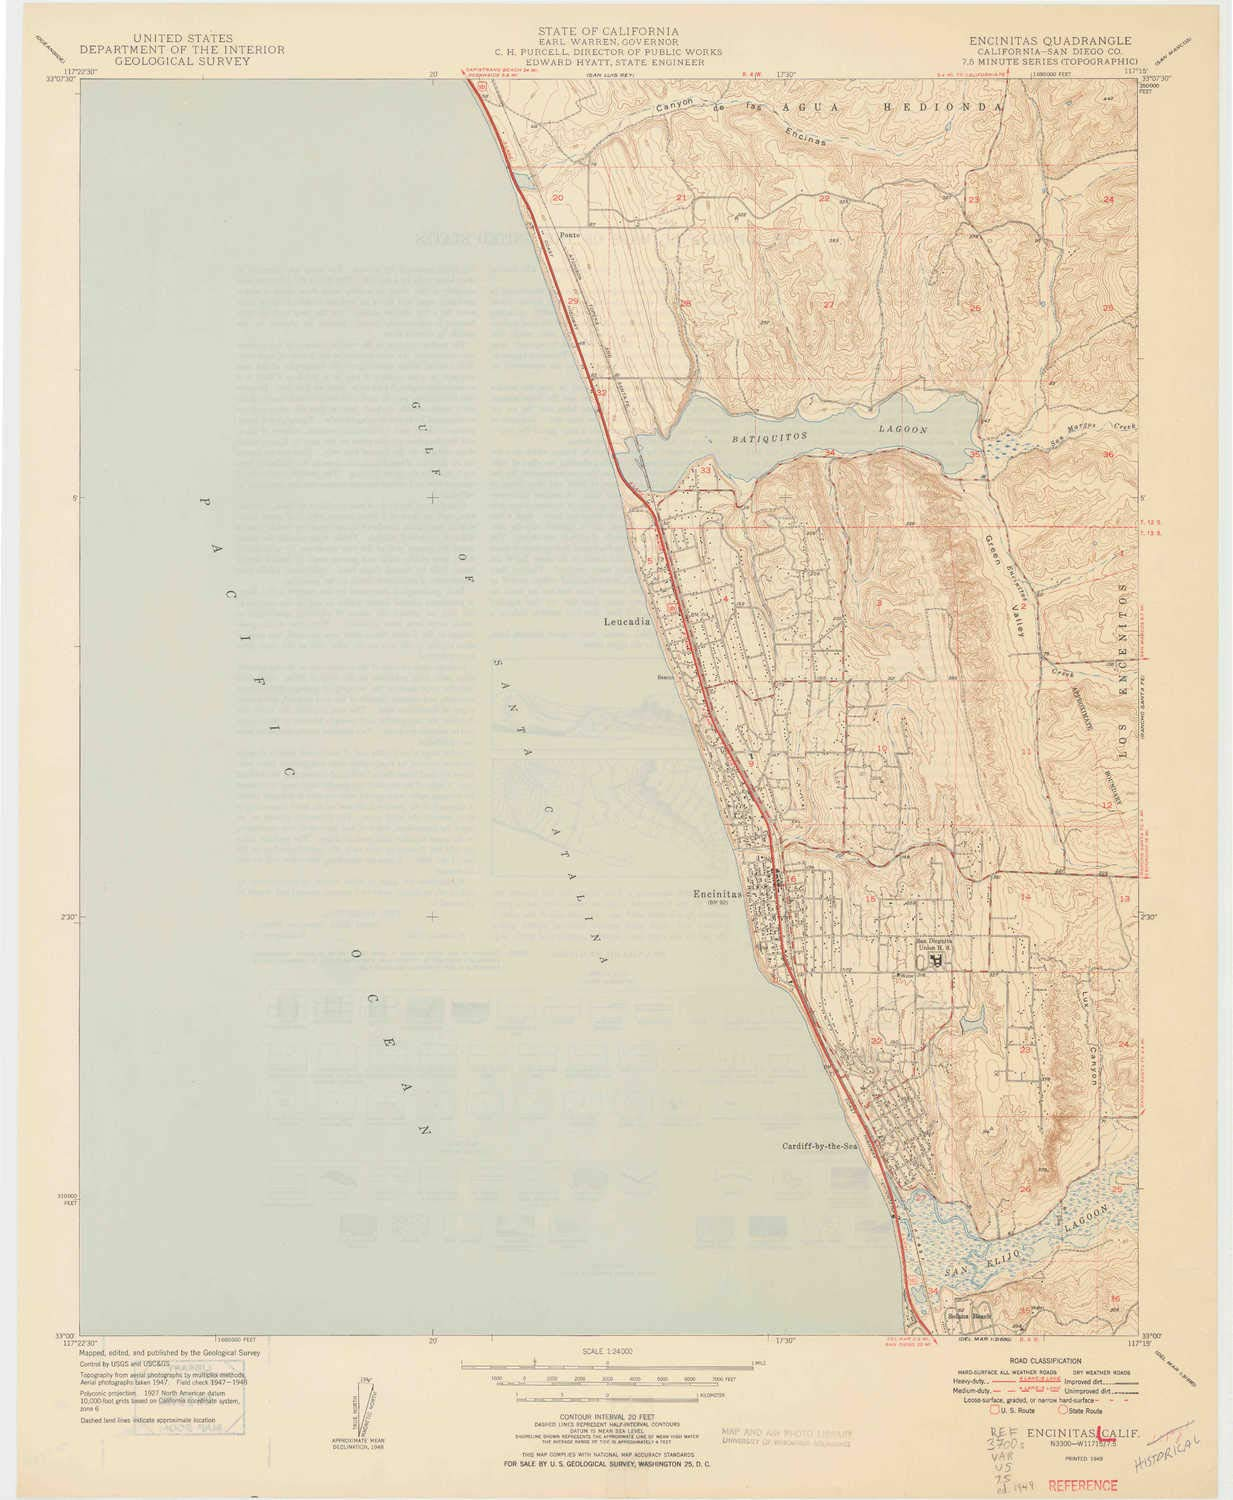 7.5 X 7.5 Minute 27.1 x 22.3 in Historical Updated 1949 1:24000 Scale YellowMaps Encinitas CA topo map 1949